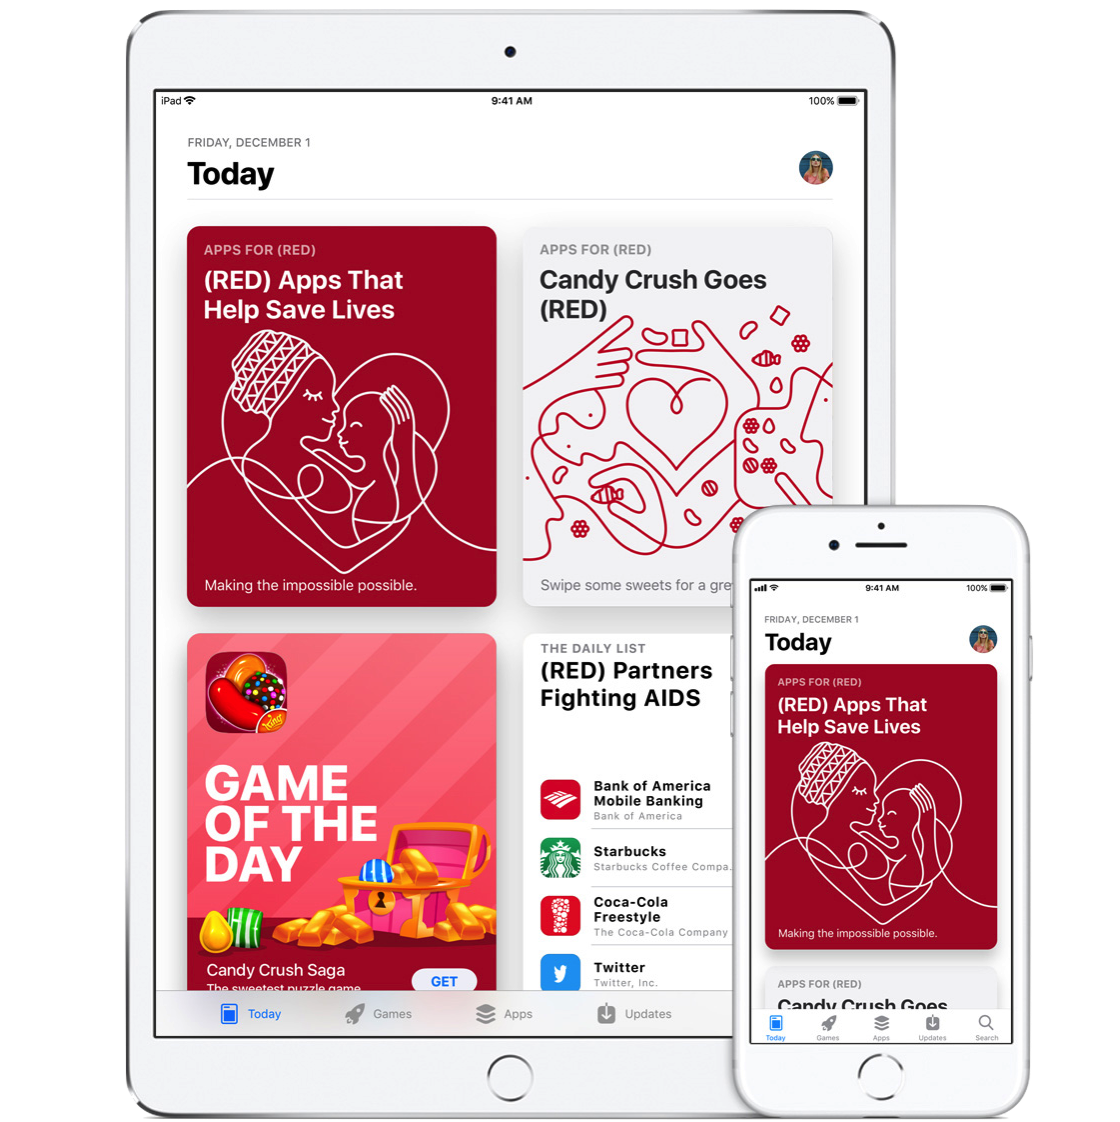 Worldaidsday app store today 20171130